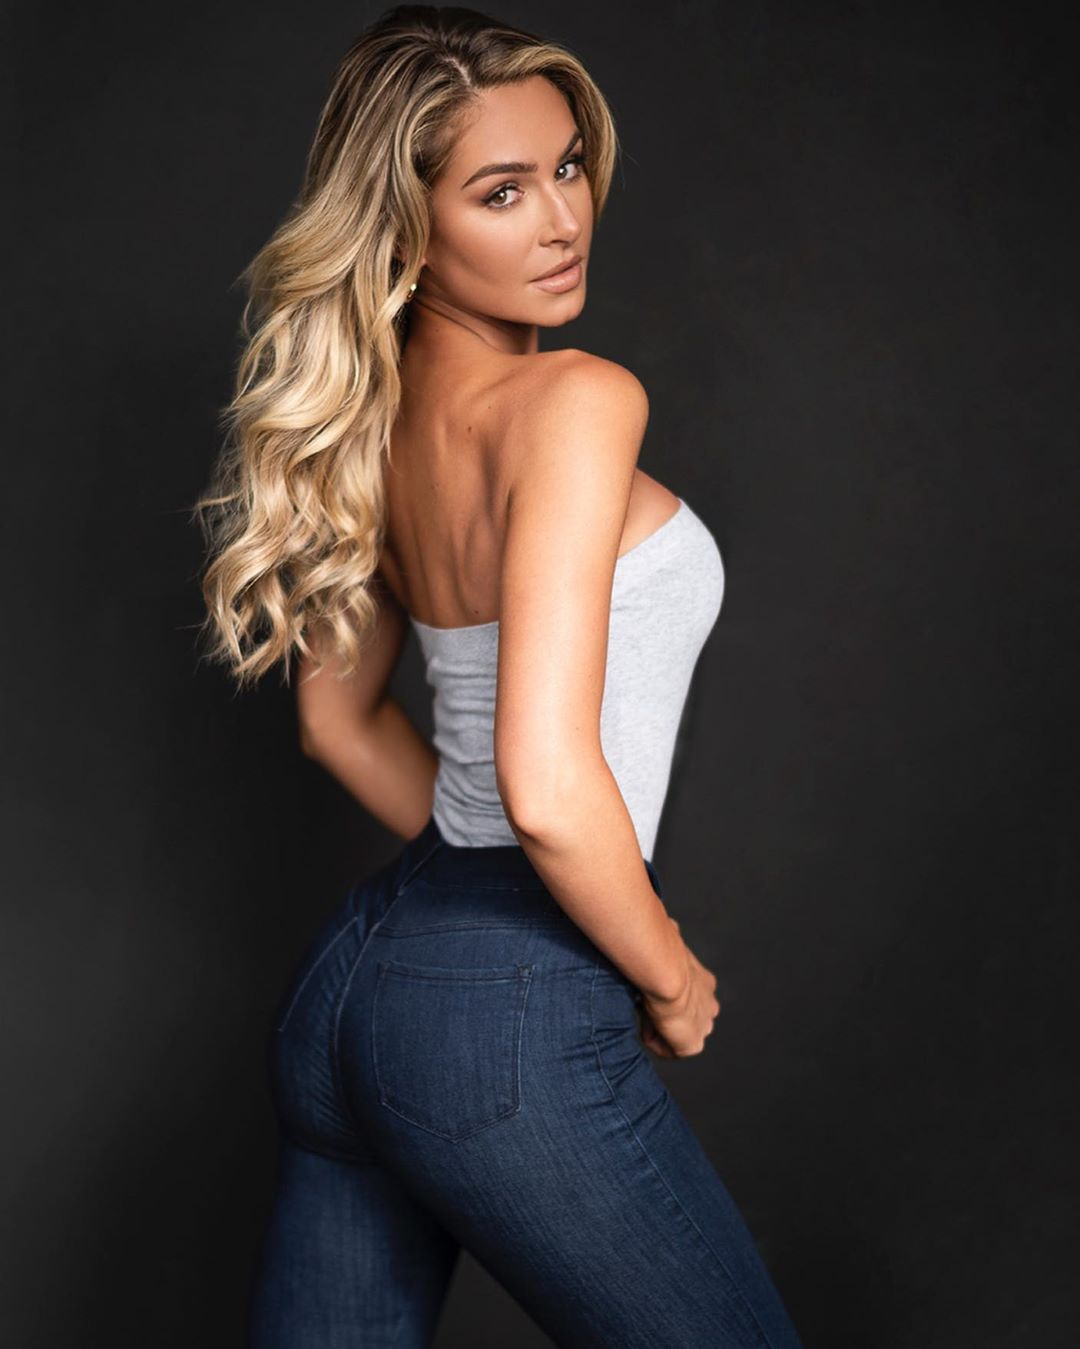 Anna-Katharina-Wallpapers-Insta-Fit-Bio-1